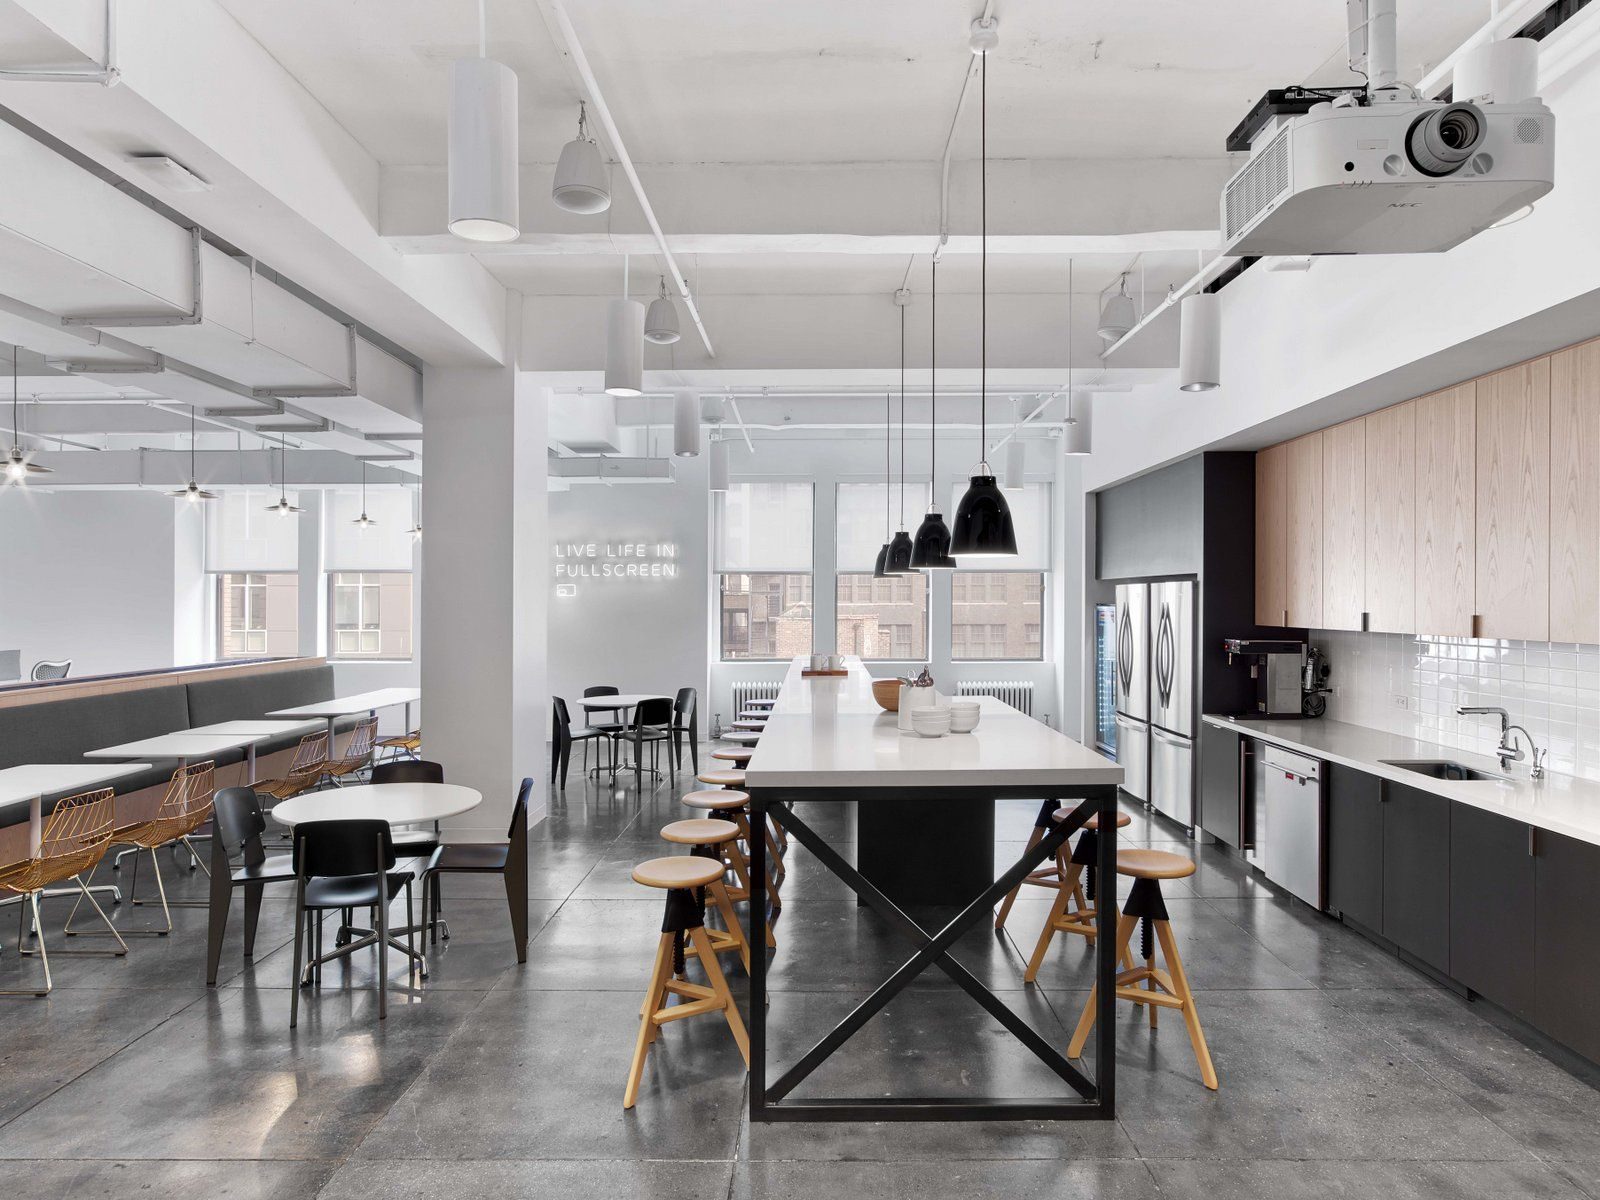 Office tour fullscreen offices new york city for Exposed ceiling design